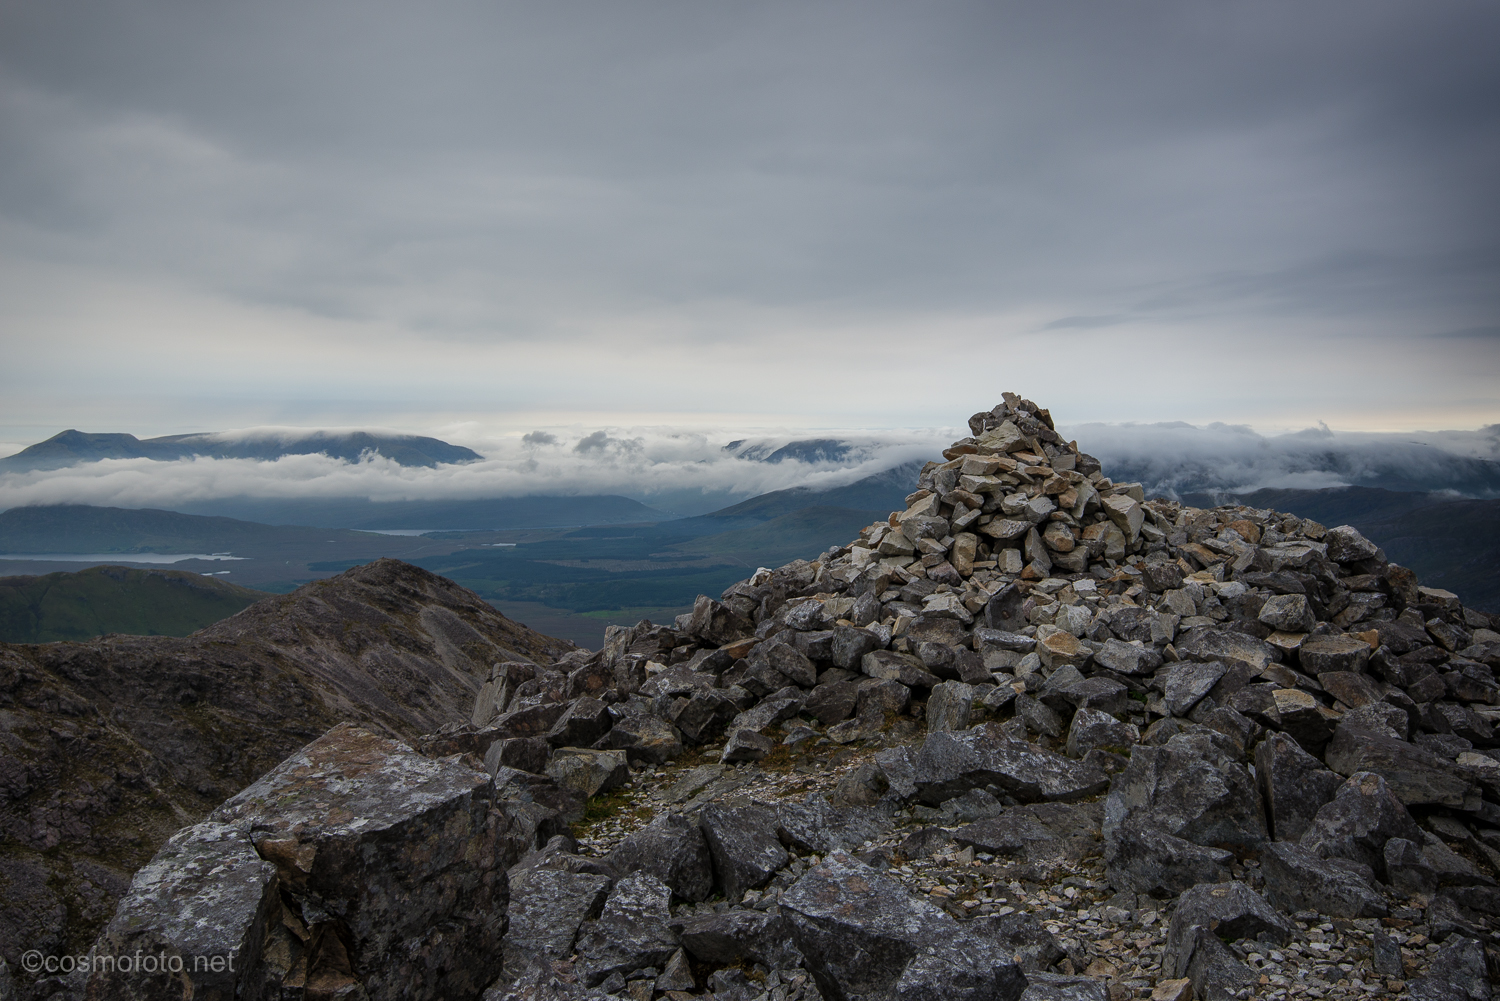 Finally, the cairn on top of Benbaum